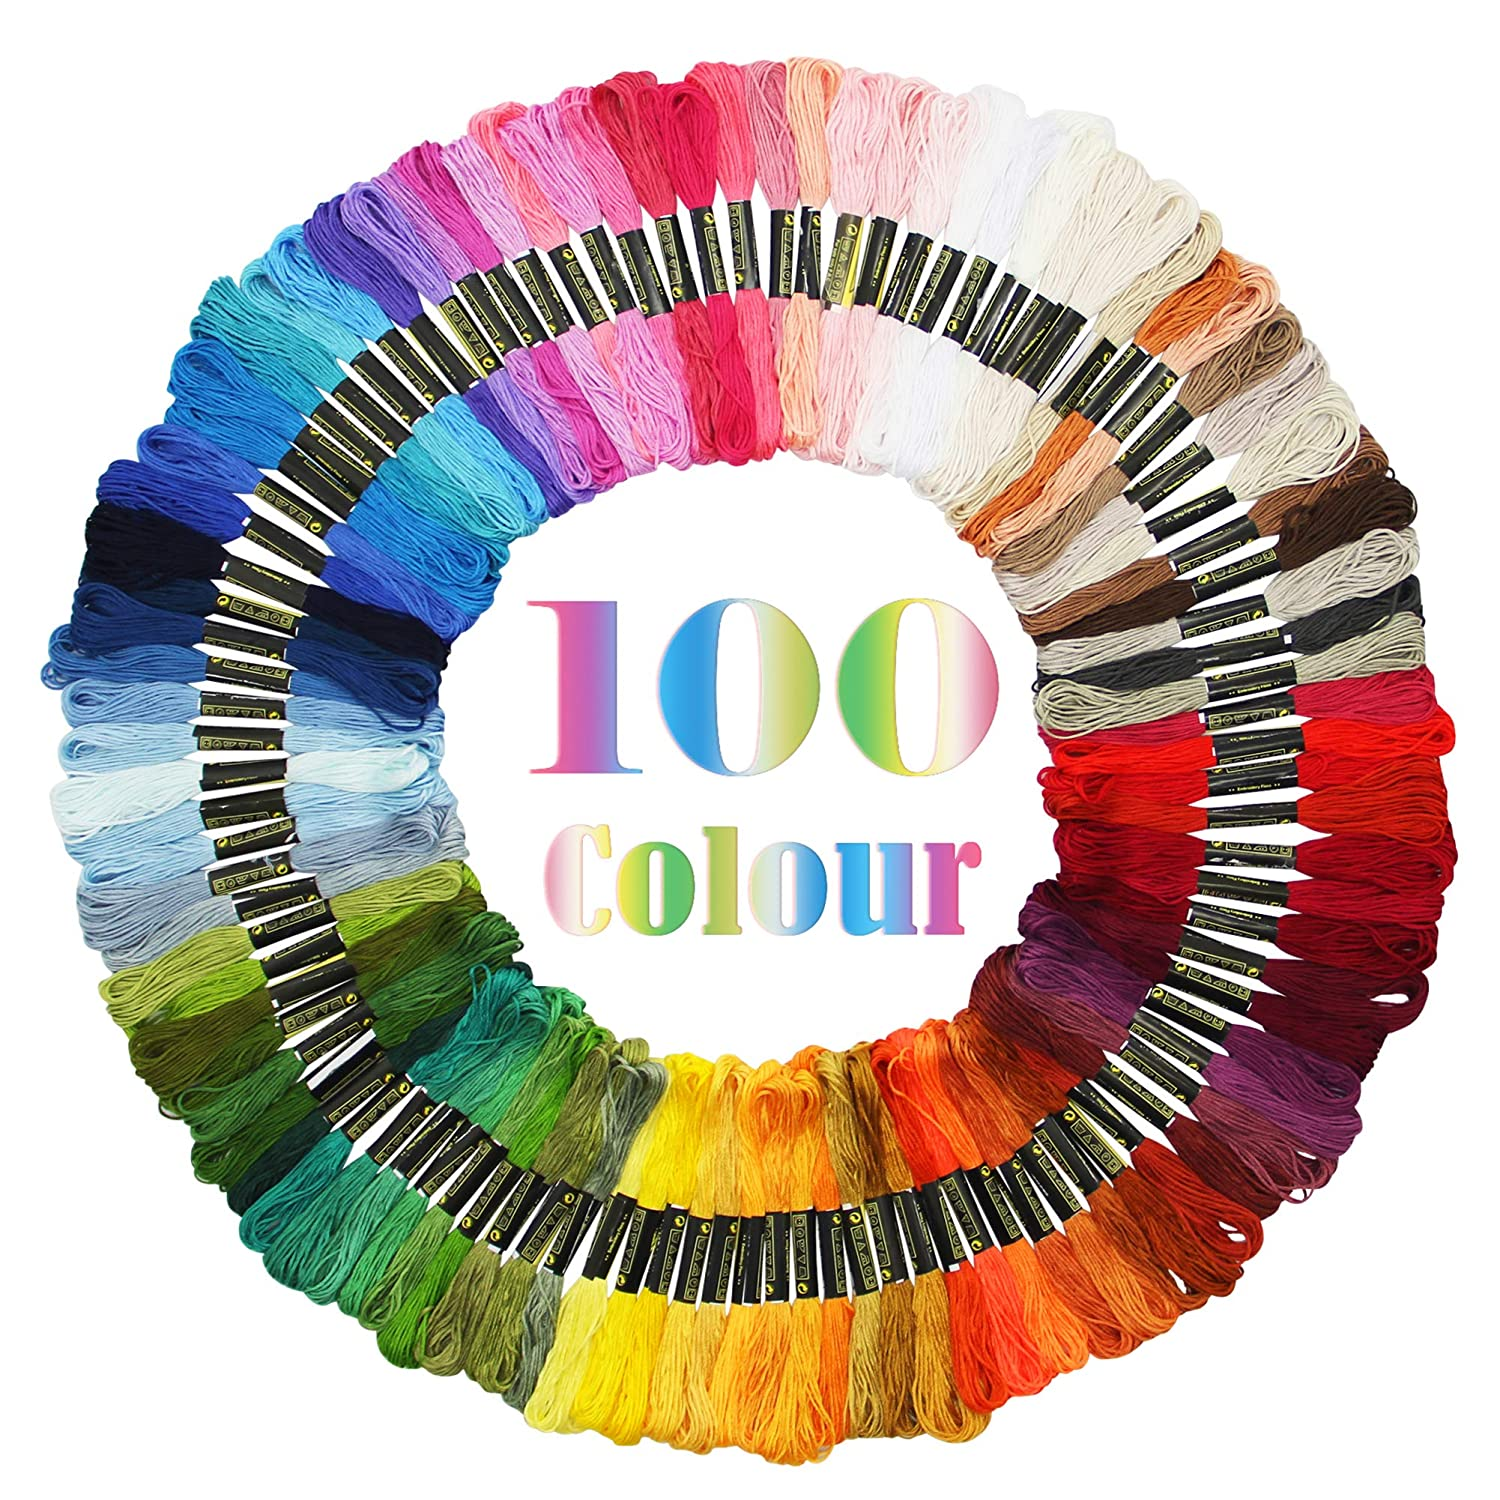 Maggift Rainbow Color Embroidery Thread,Cross Stitch Threads, Bracelets Floss, Crafts Floss, 100 Skeins 4336932229